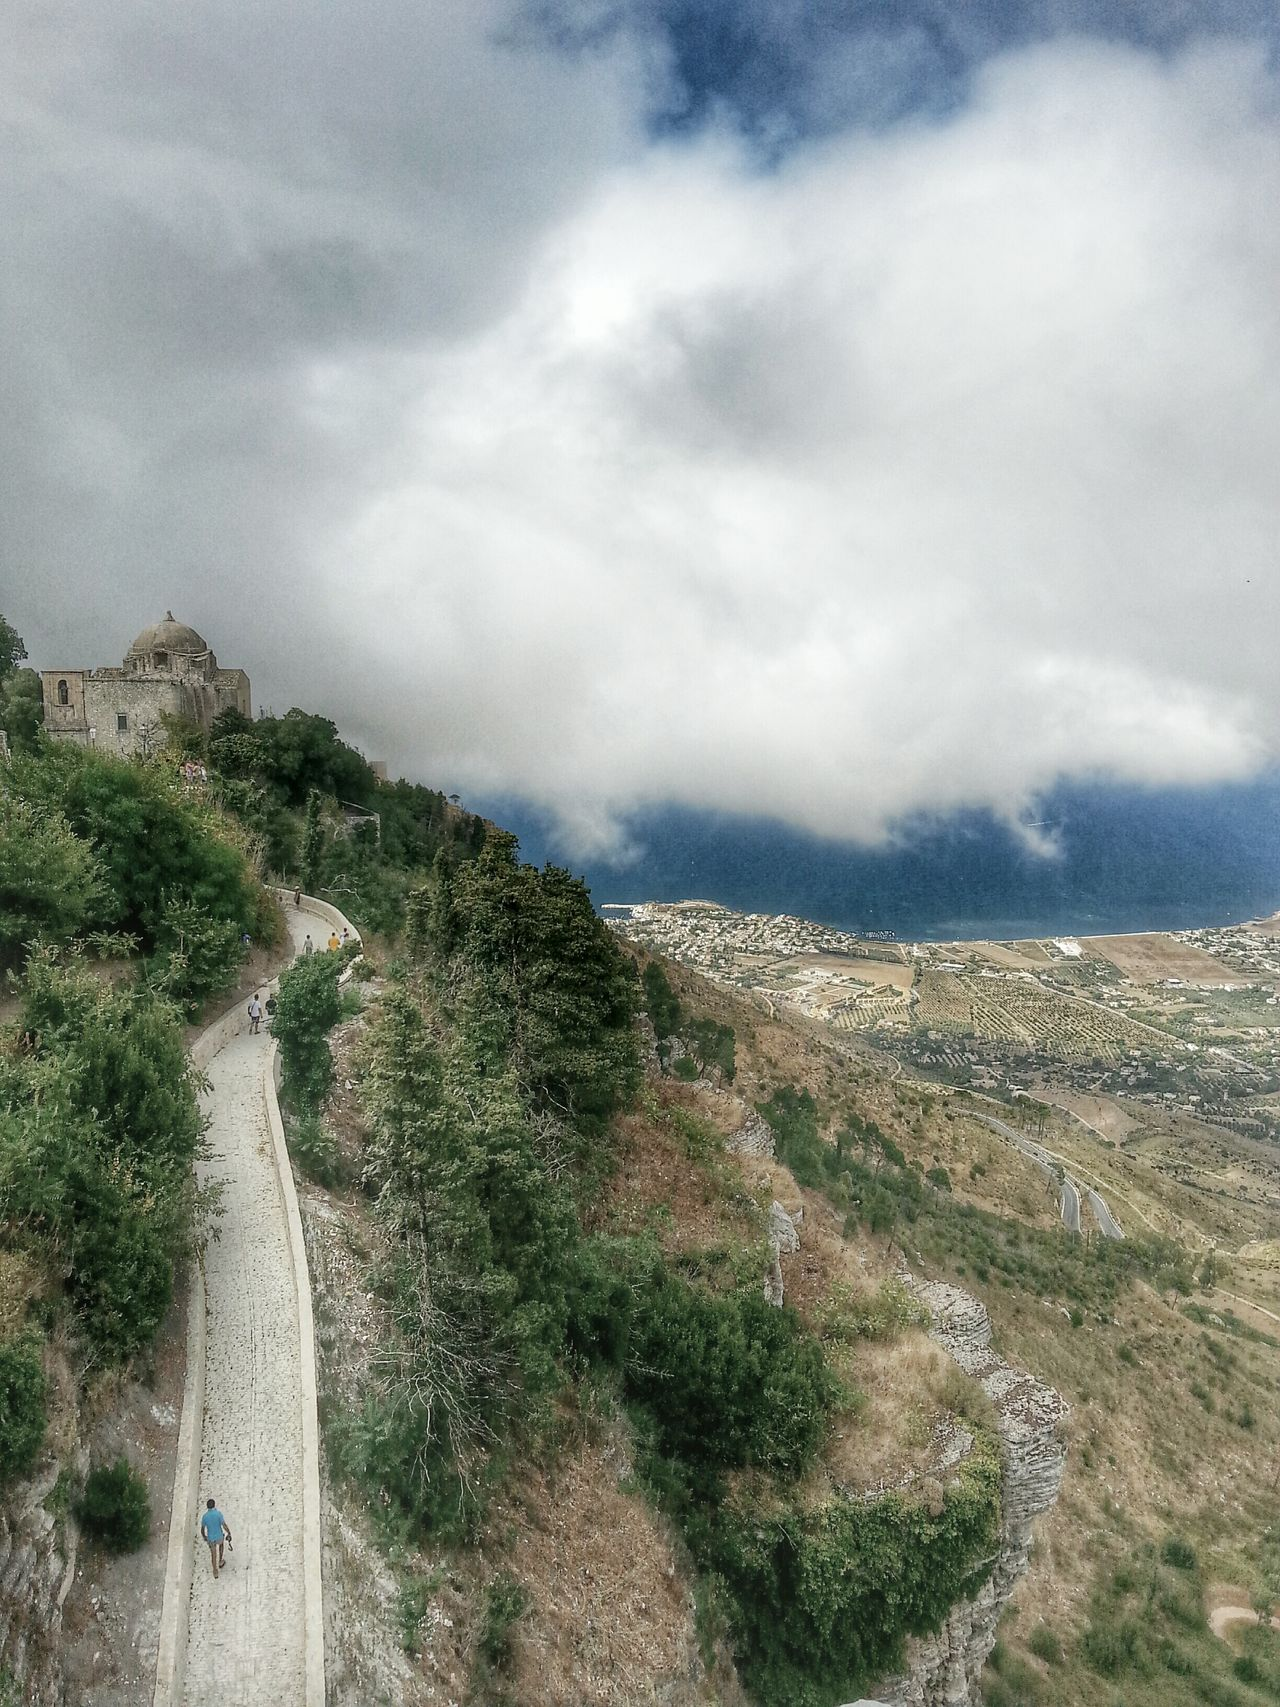 Landscape_photography sunset sun clouds skylovers sky nature beautifulinnature naturalbeauty photography landscape Erice Erice Italia Erice, Sicilia,paesaggio, Castello Quite Landscape Quite Place Quite Time Quite Moments Medioeval Cities Medioeval Village Medioeval Sicilian City Way To Heaven Way To Life Long Way To Go...